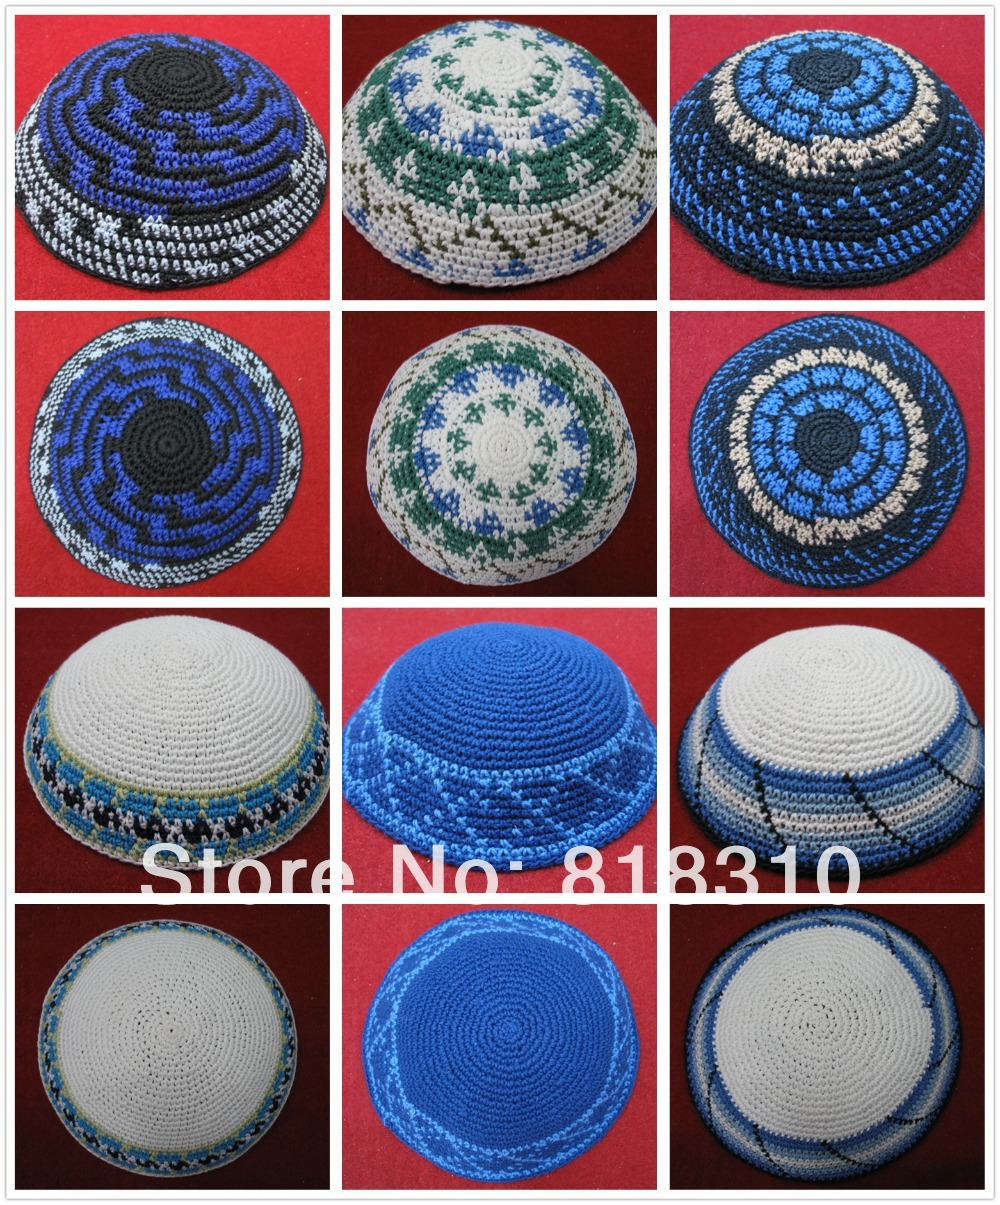 Buy knit kippot and get free shipping on AliExpress.com